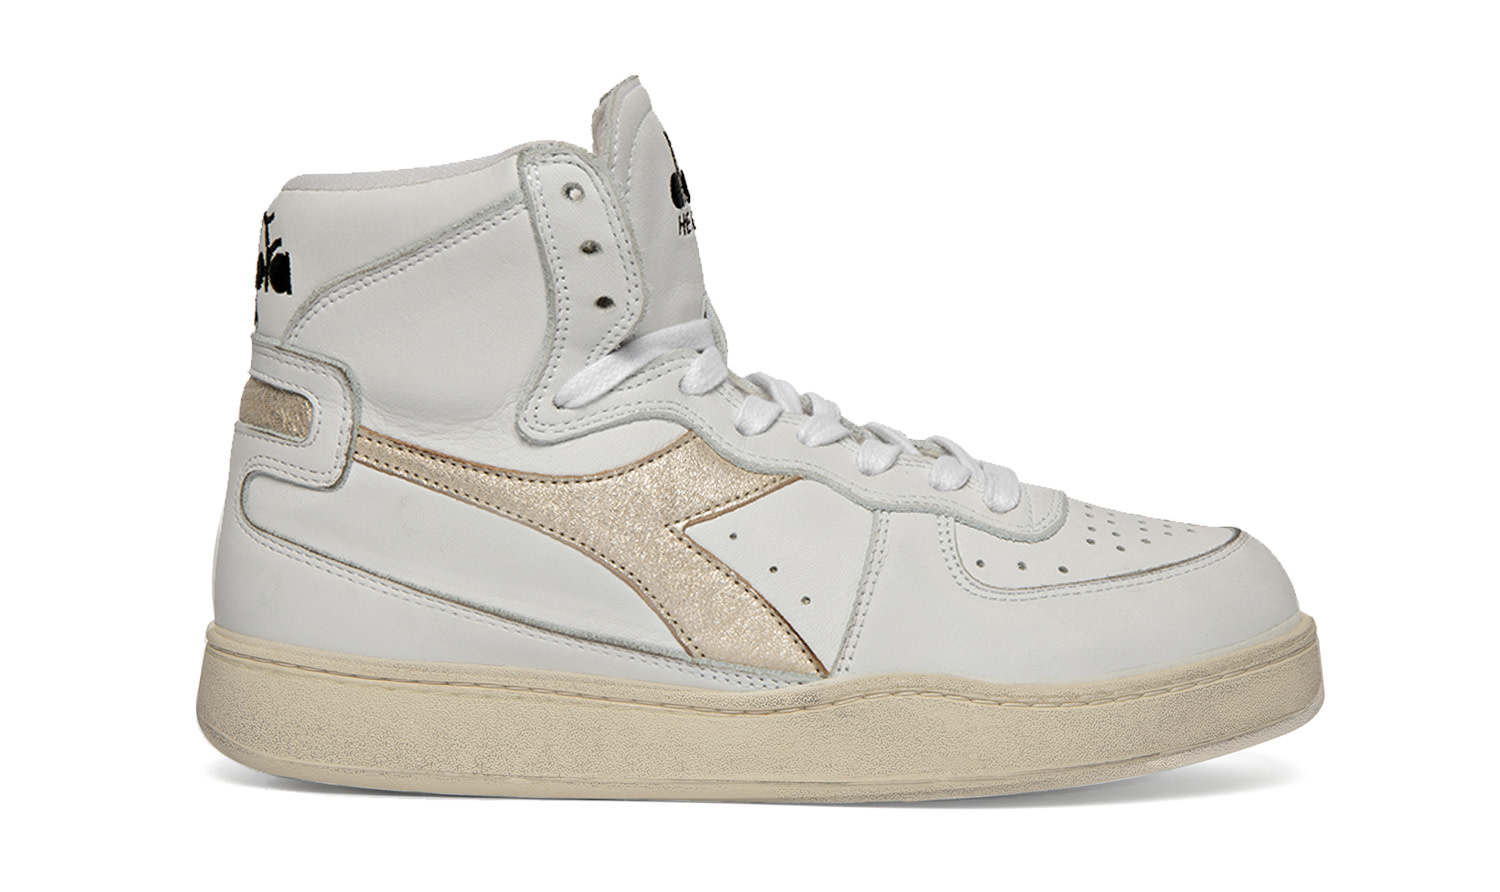 Baskets used white/gold-7